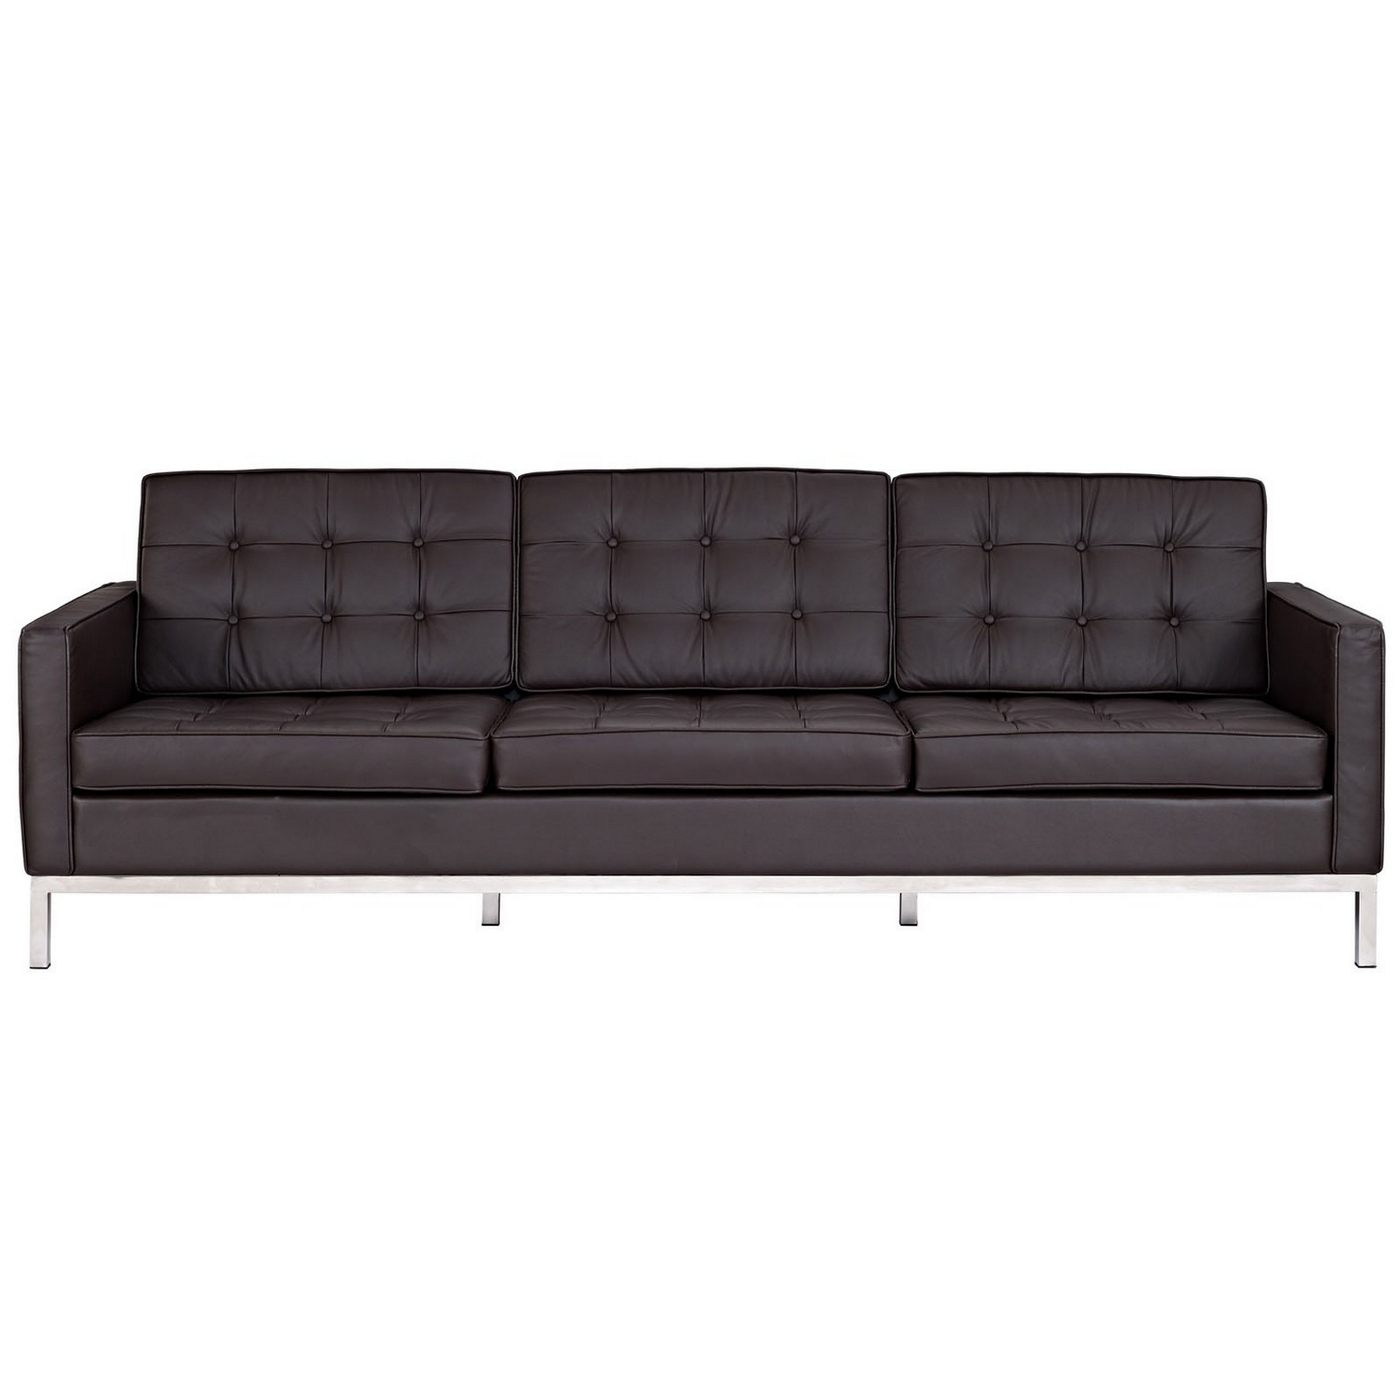 Loft contemporary button tufted leather sofa with steel frame brown Steel frame sofa